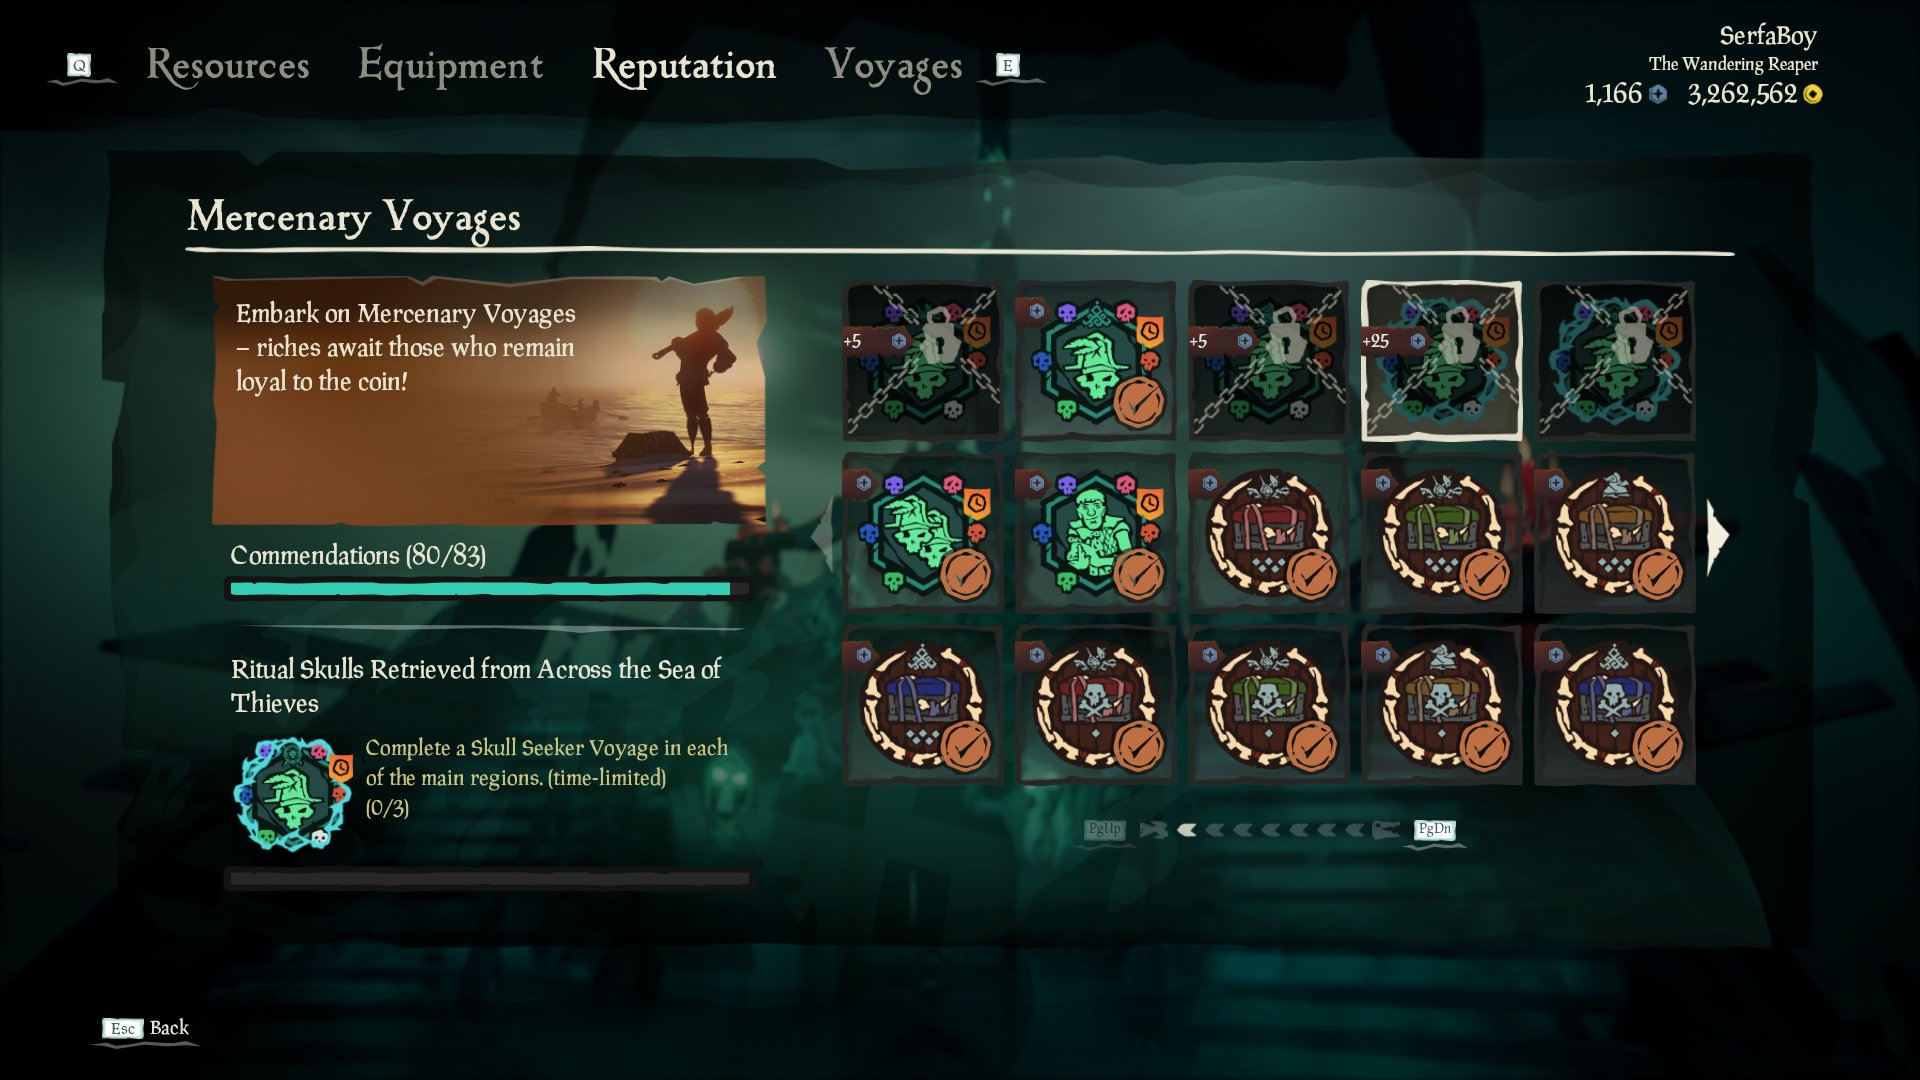 Sea of Thieves mercenary voyages doubloons